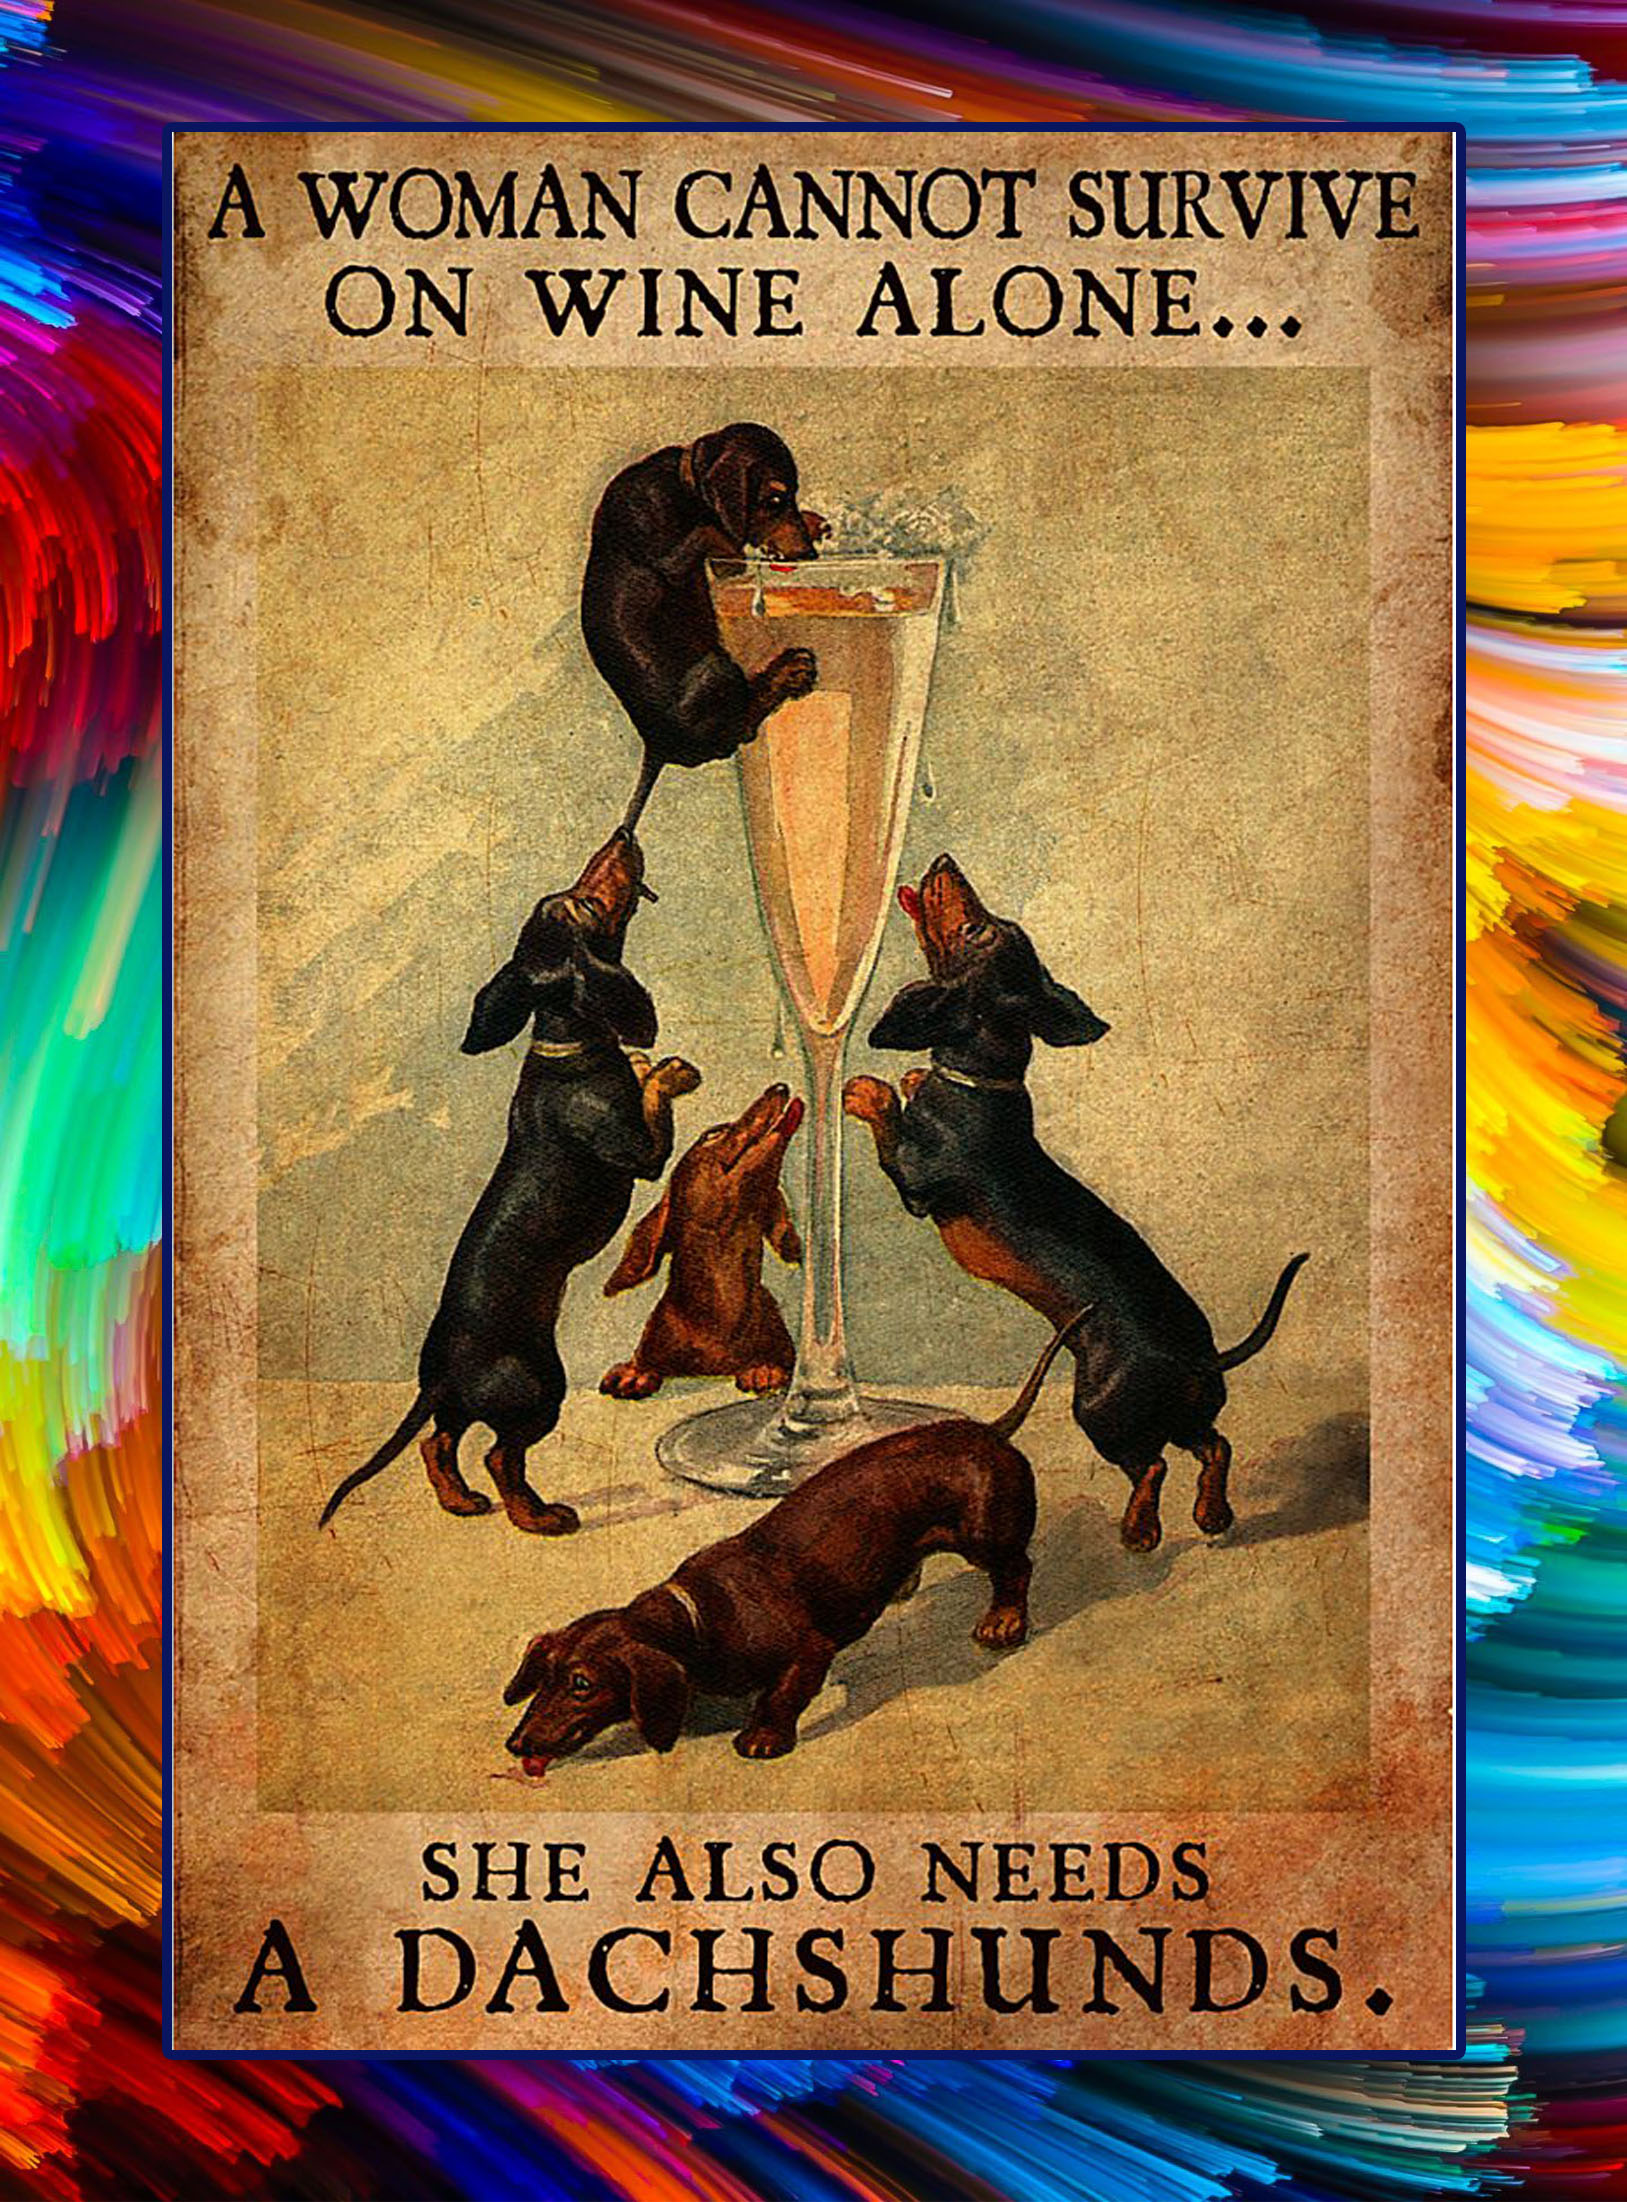 A woman cannot survive on wine alone she also needs a dachshunds poster